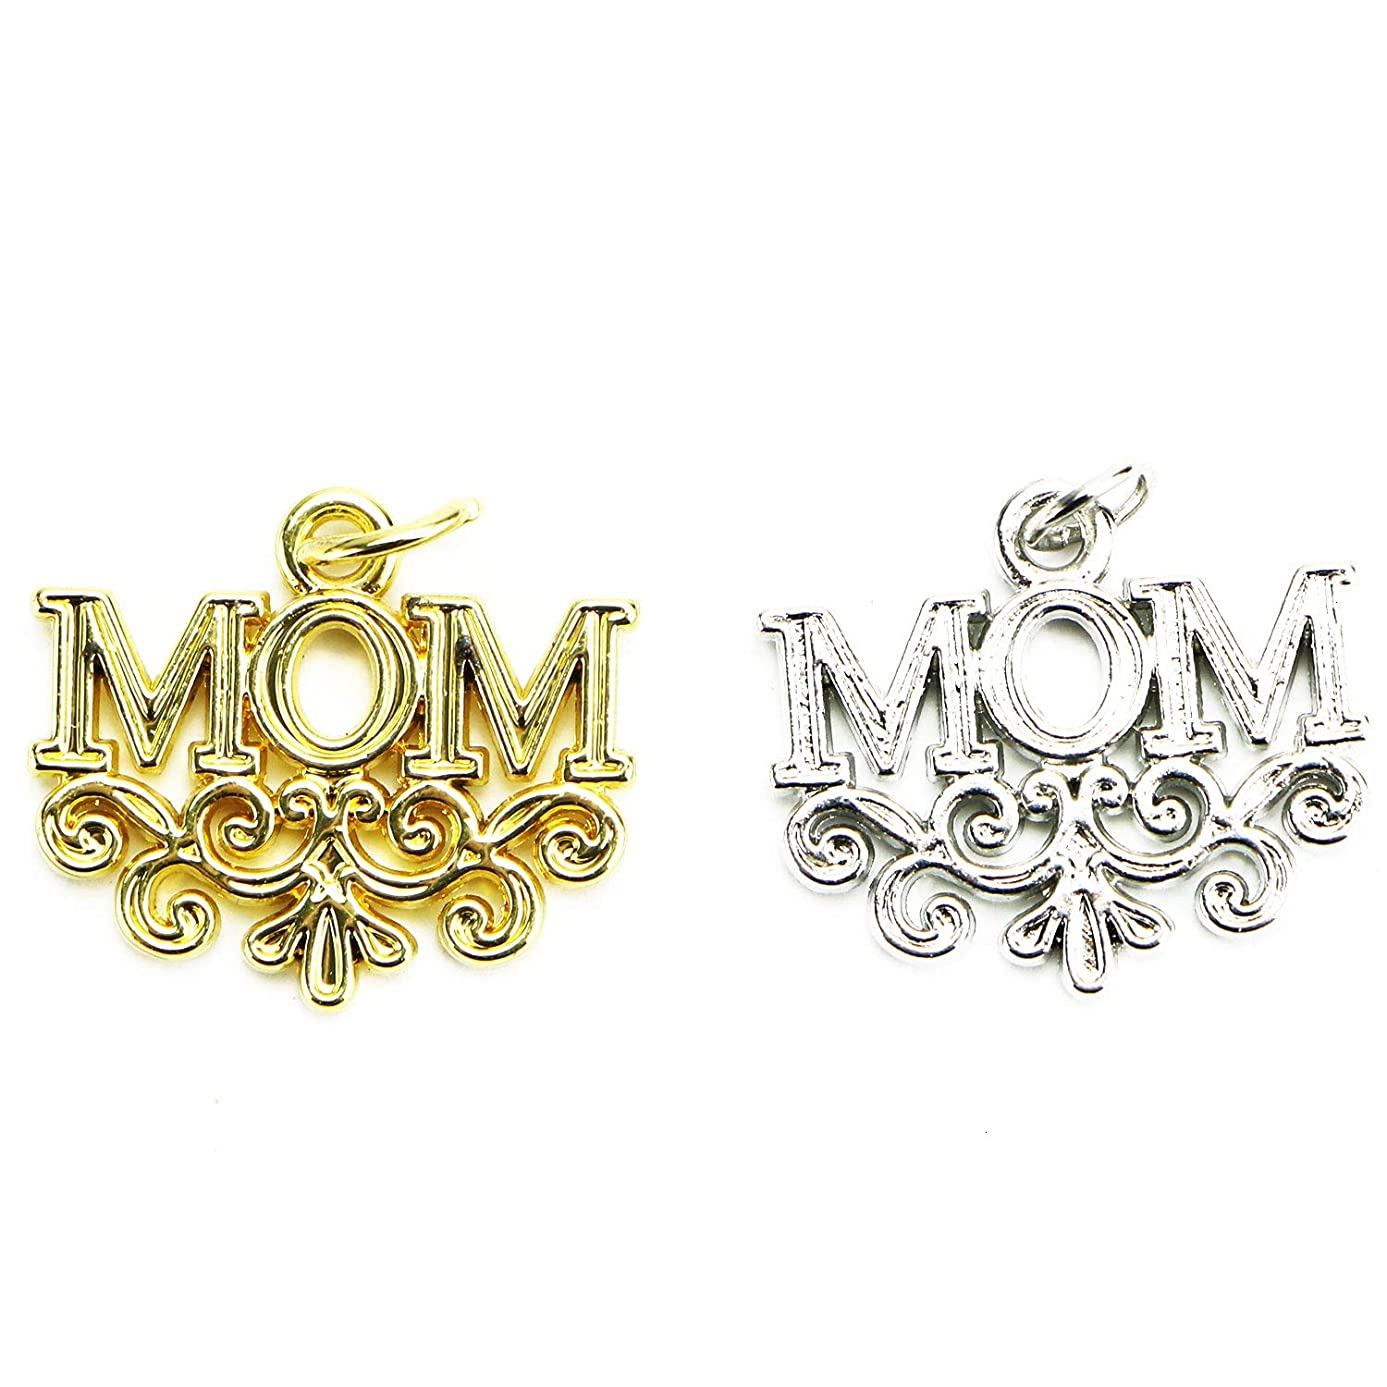 Monrocco Zinc Alloy Family Mom Words Charm 20 Pieces Mom Charms with Flower Pattern for Jewelry Making (Gold & Silver)